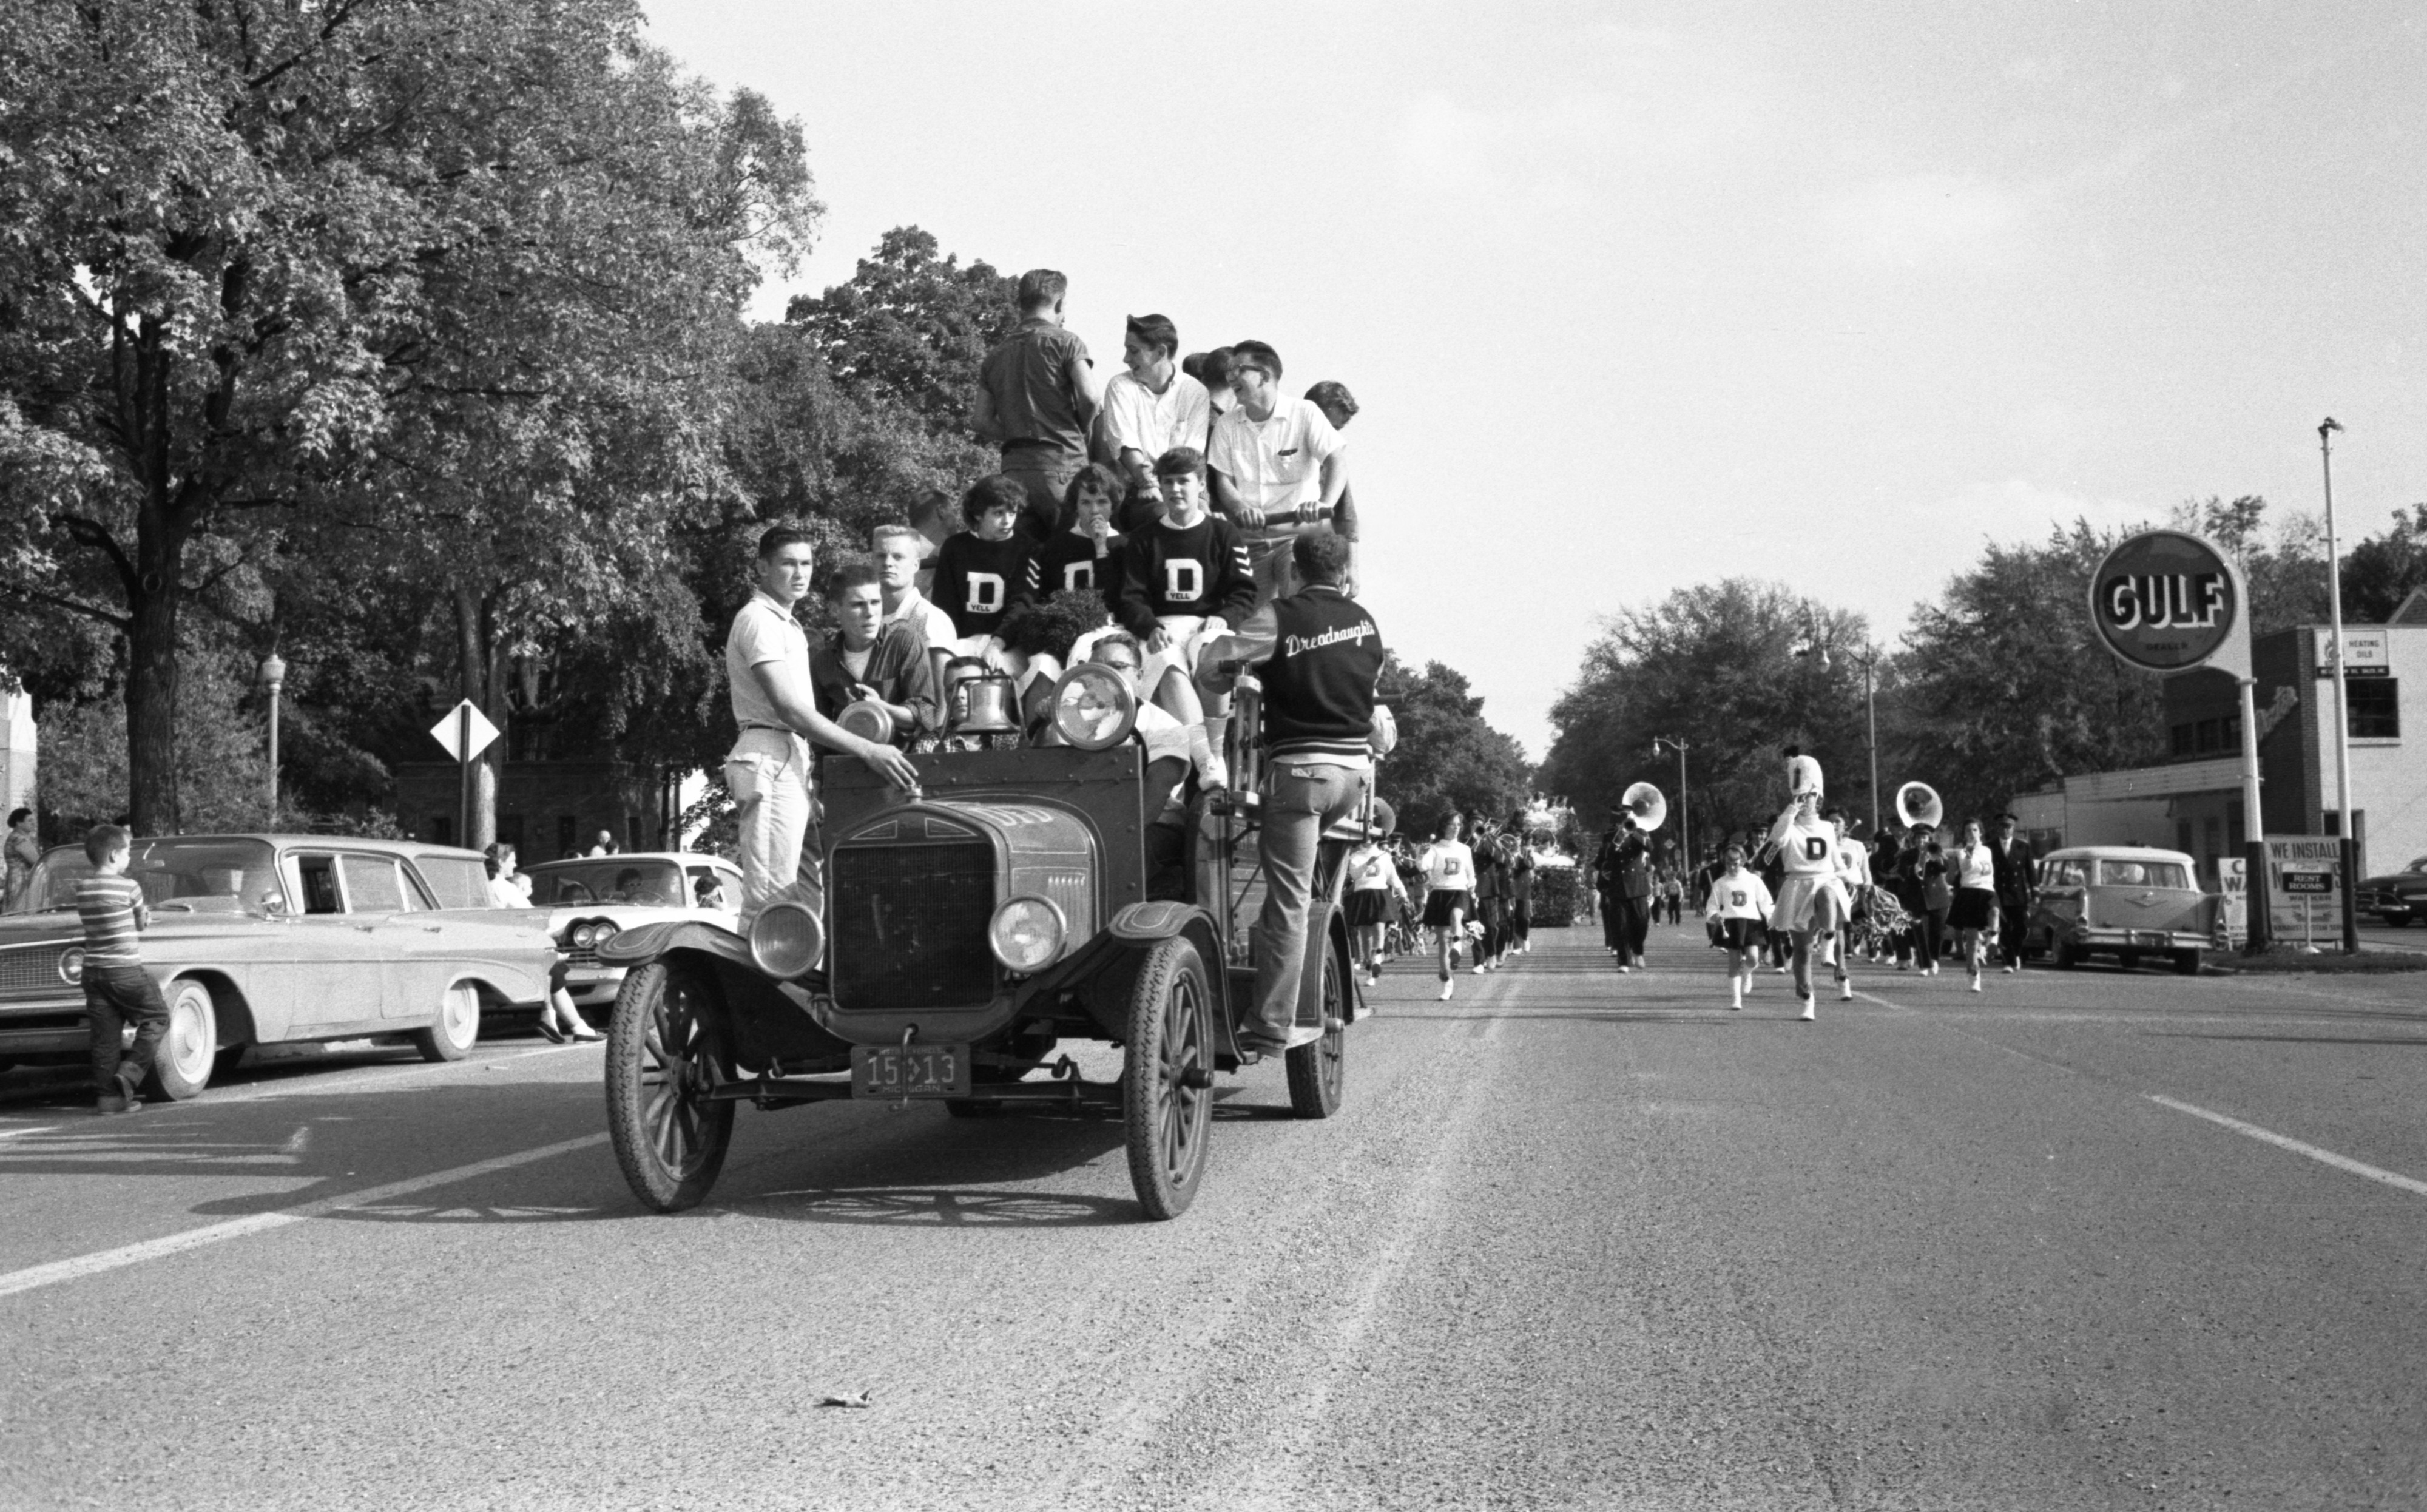 Dexter High School Homecoming Parade, October 1959 image